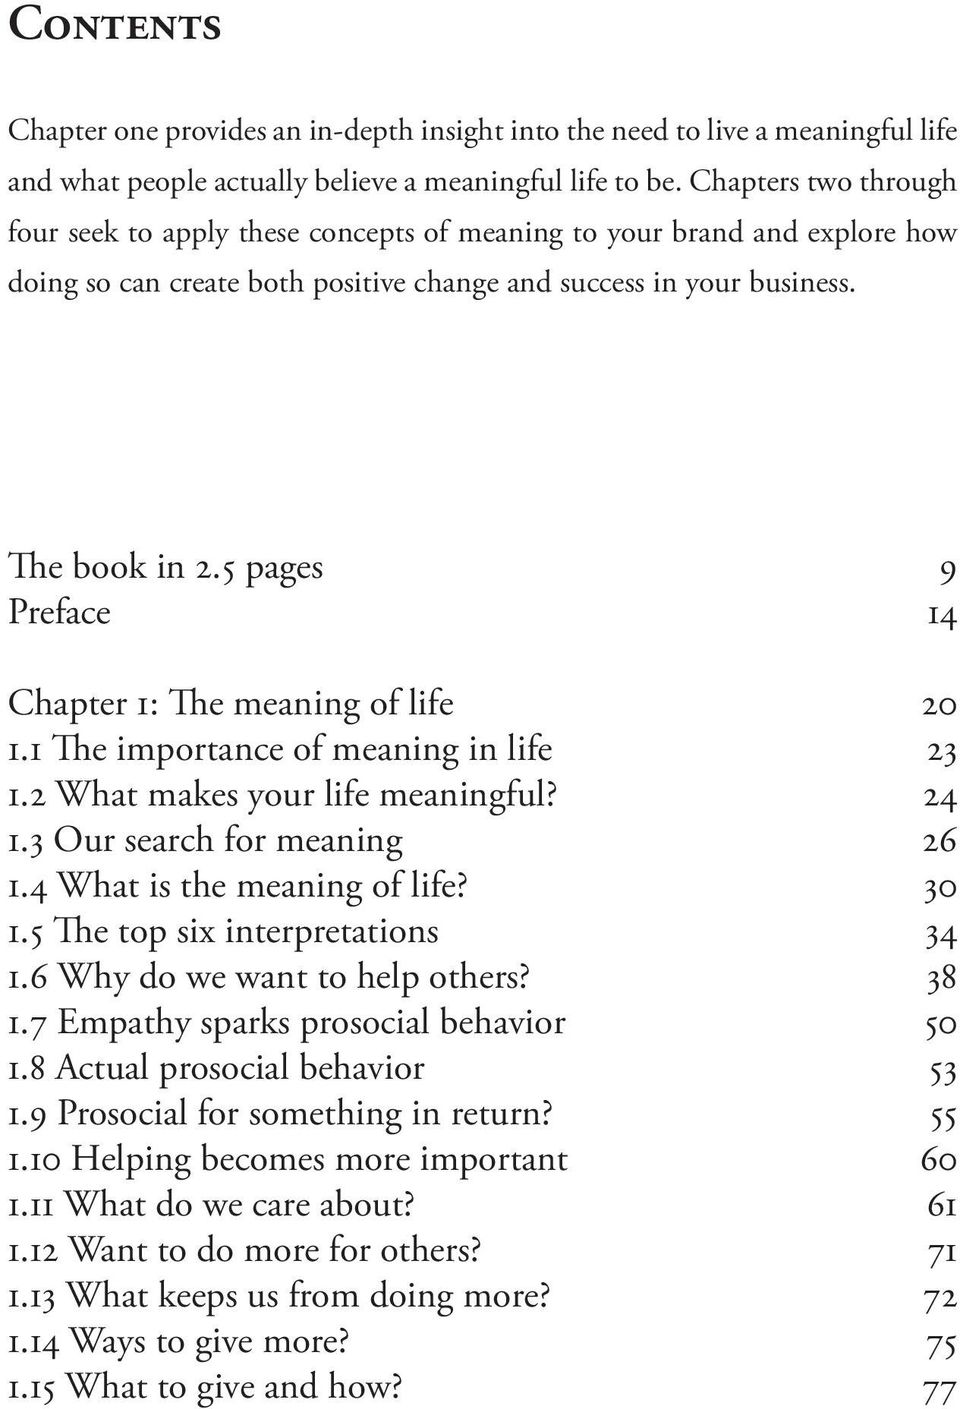 5 pages 9 Preface 14 Chapter 1: The meaning of life 20 1.1 The importance of meaning in life 23 1.2 What makes your life meaningful? 24 1.3 Our search for meaning 26 1.4 What is the meaning of life?